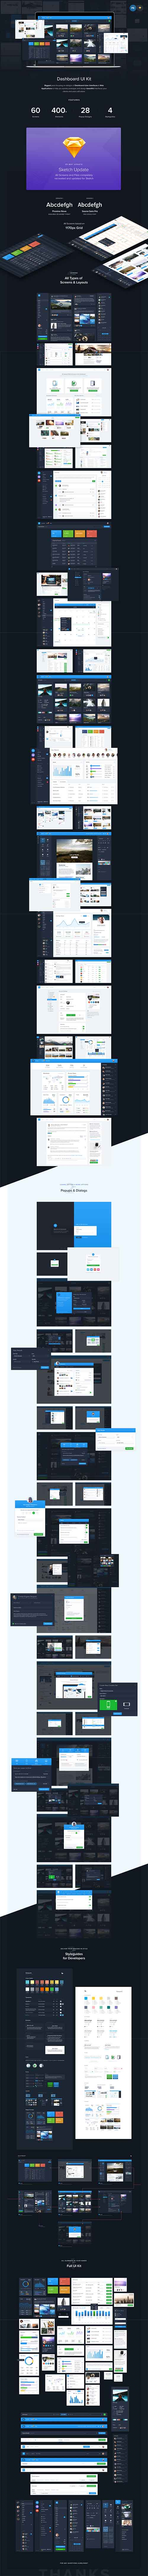 Dashboard60 UI Kit - 67 Files for mastering the art of Dashboard interface